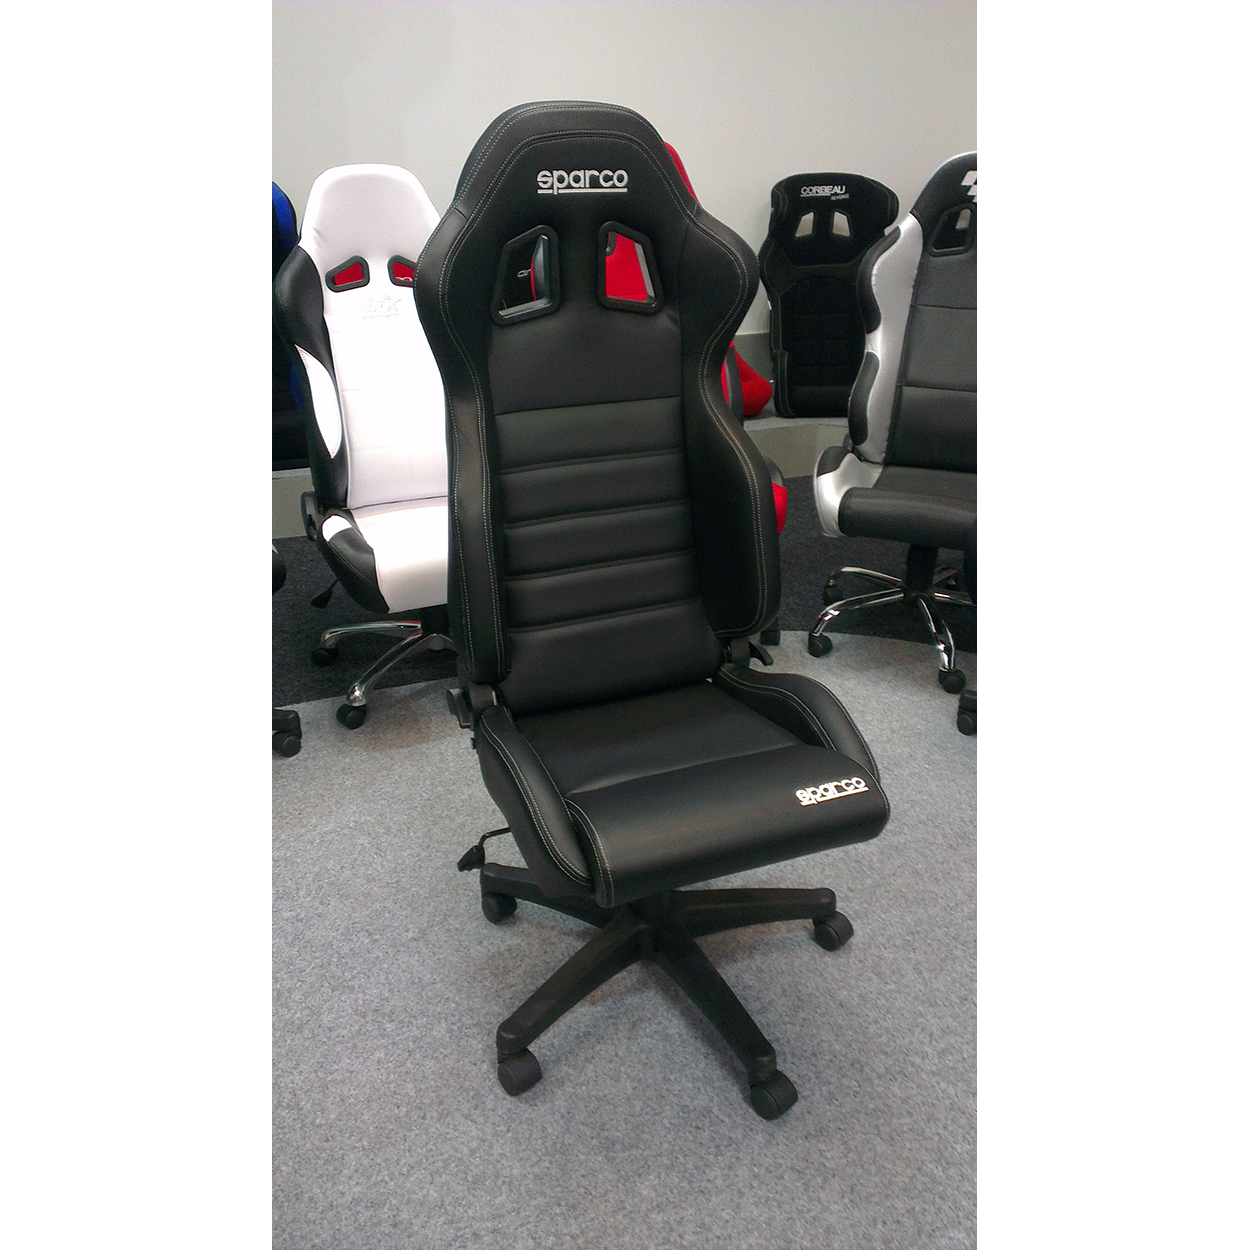 mesh seat back bucket and leather desk racing computer ergonomic chair high lumbar swivel furmax office pin executive support pu